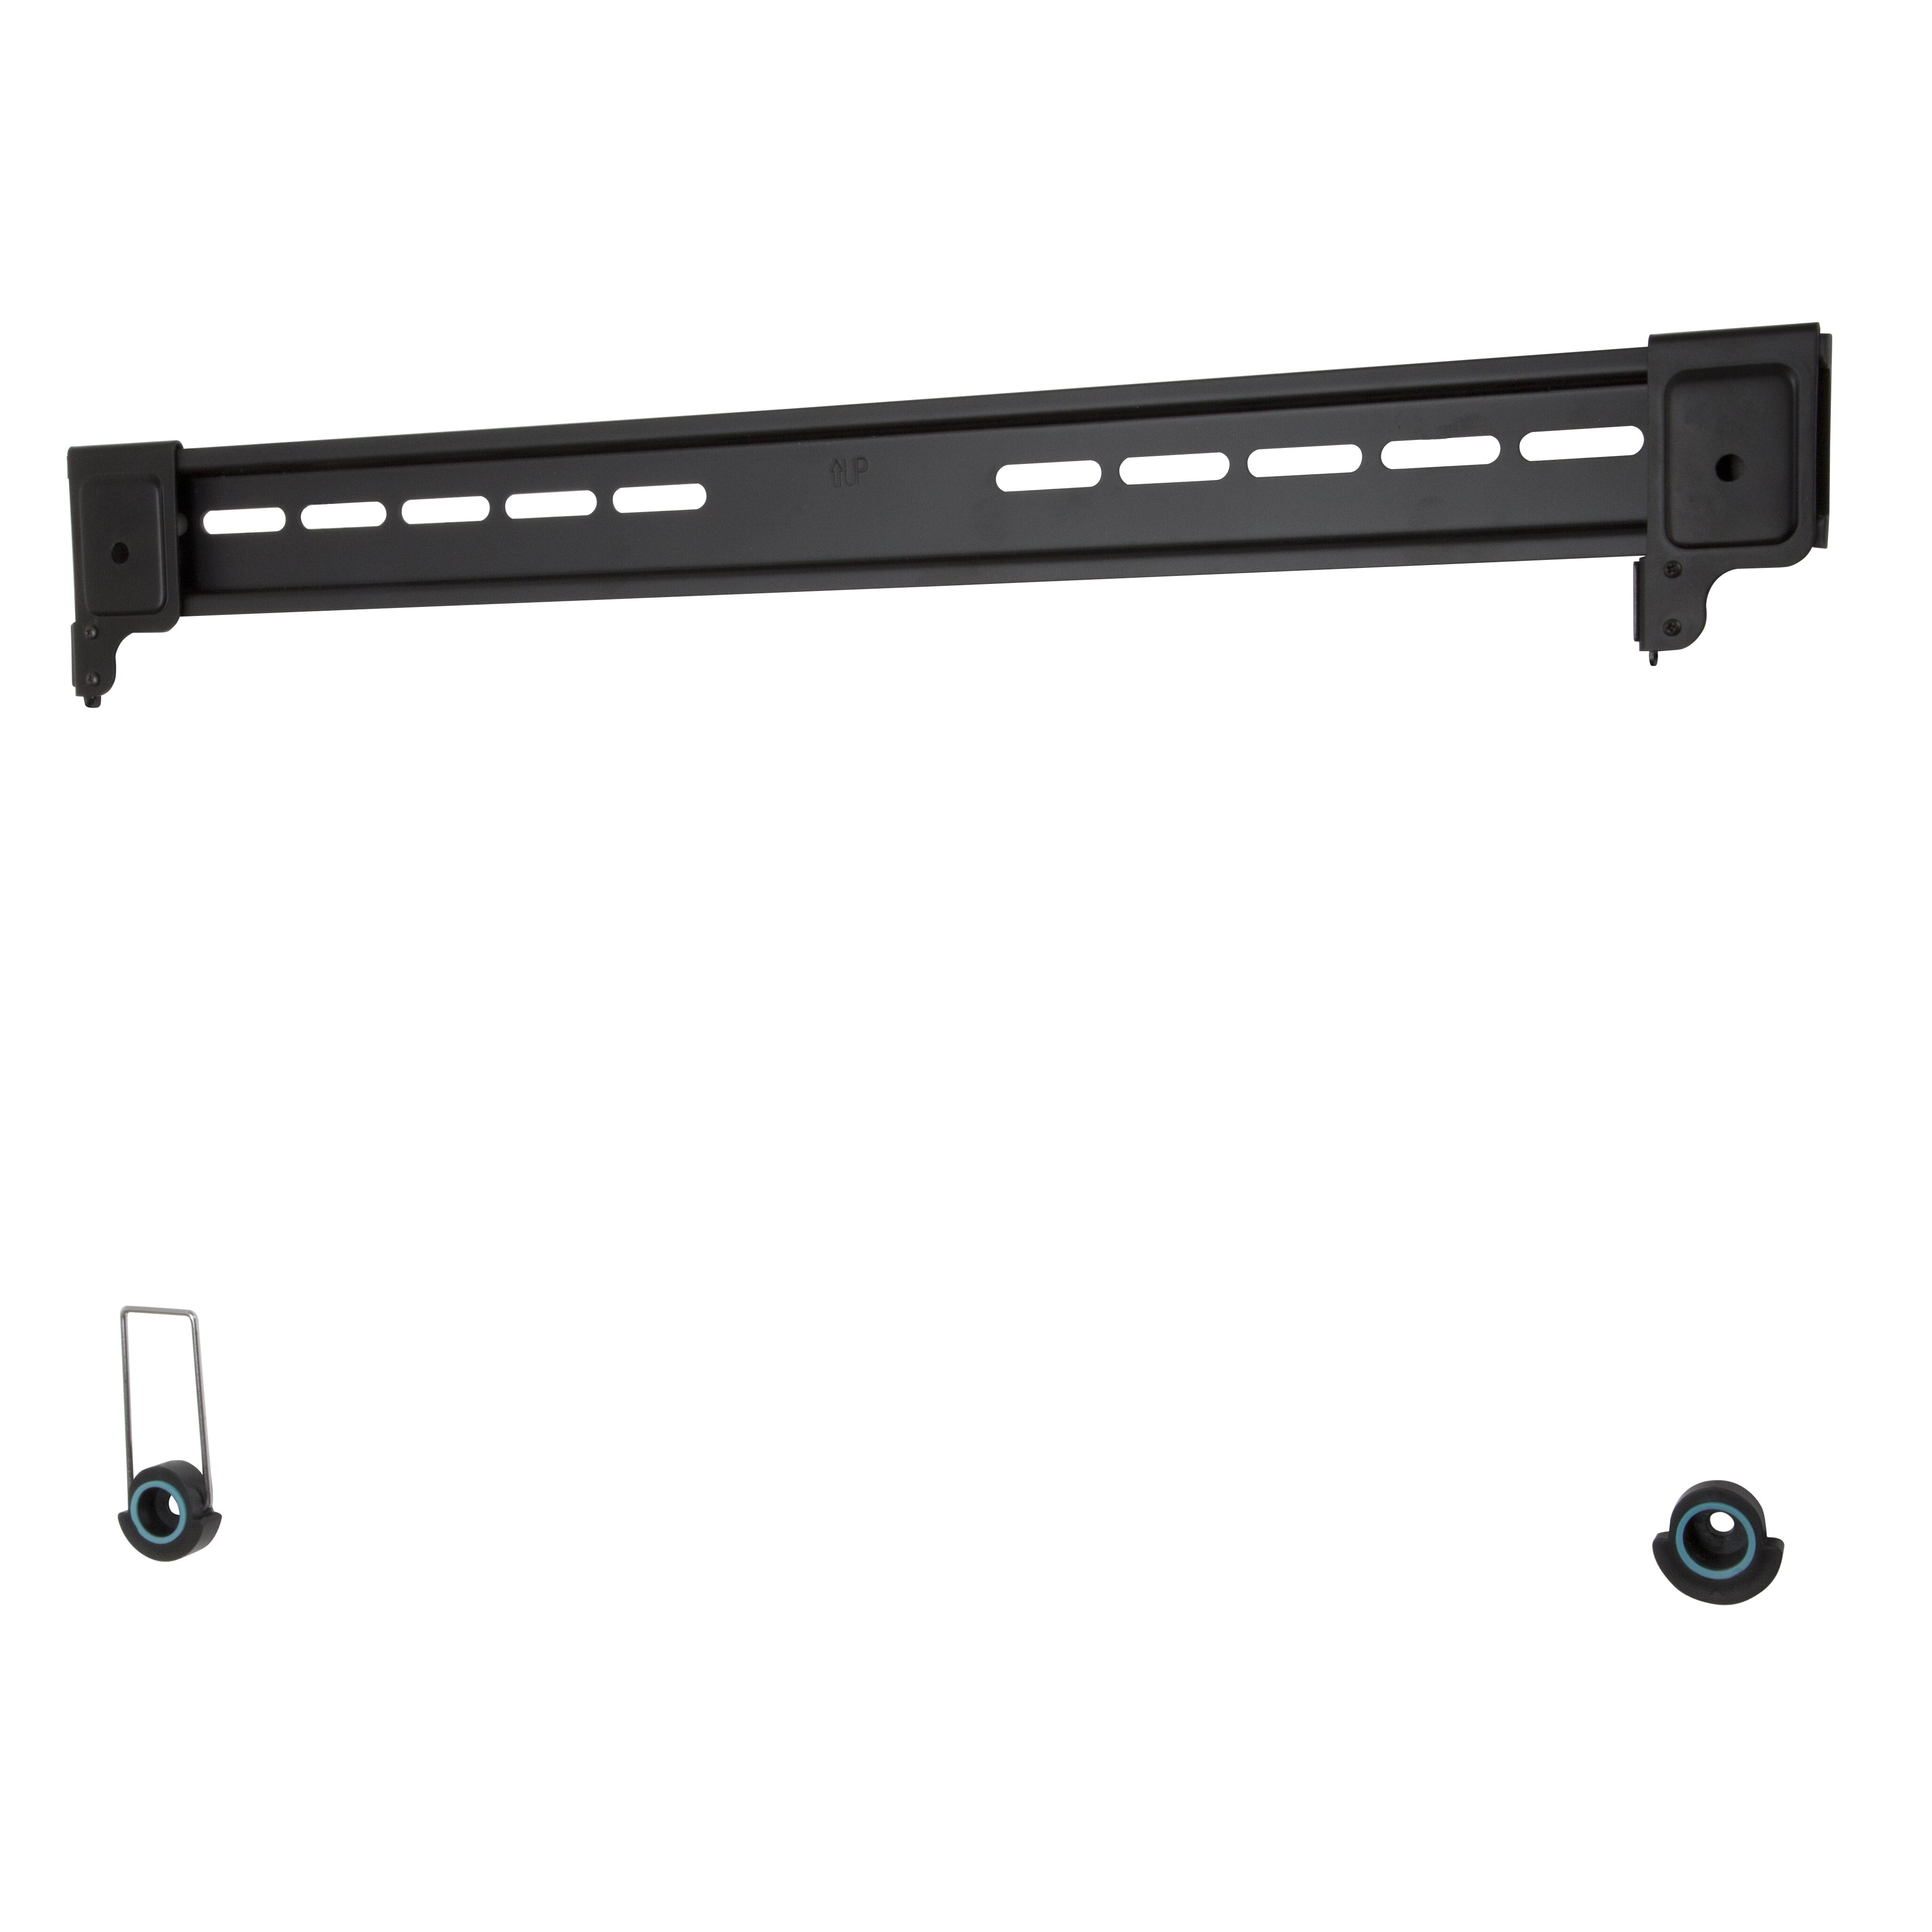 Swift Mounts Ultra Low Profile Fixed Wall Mount For 37